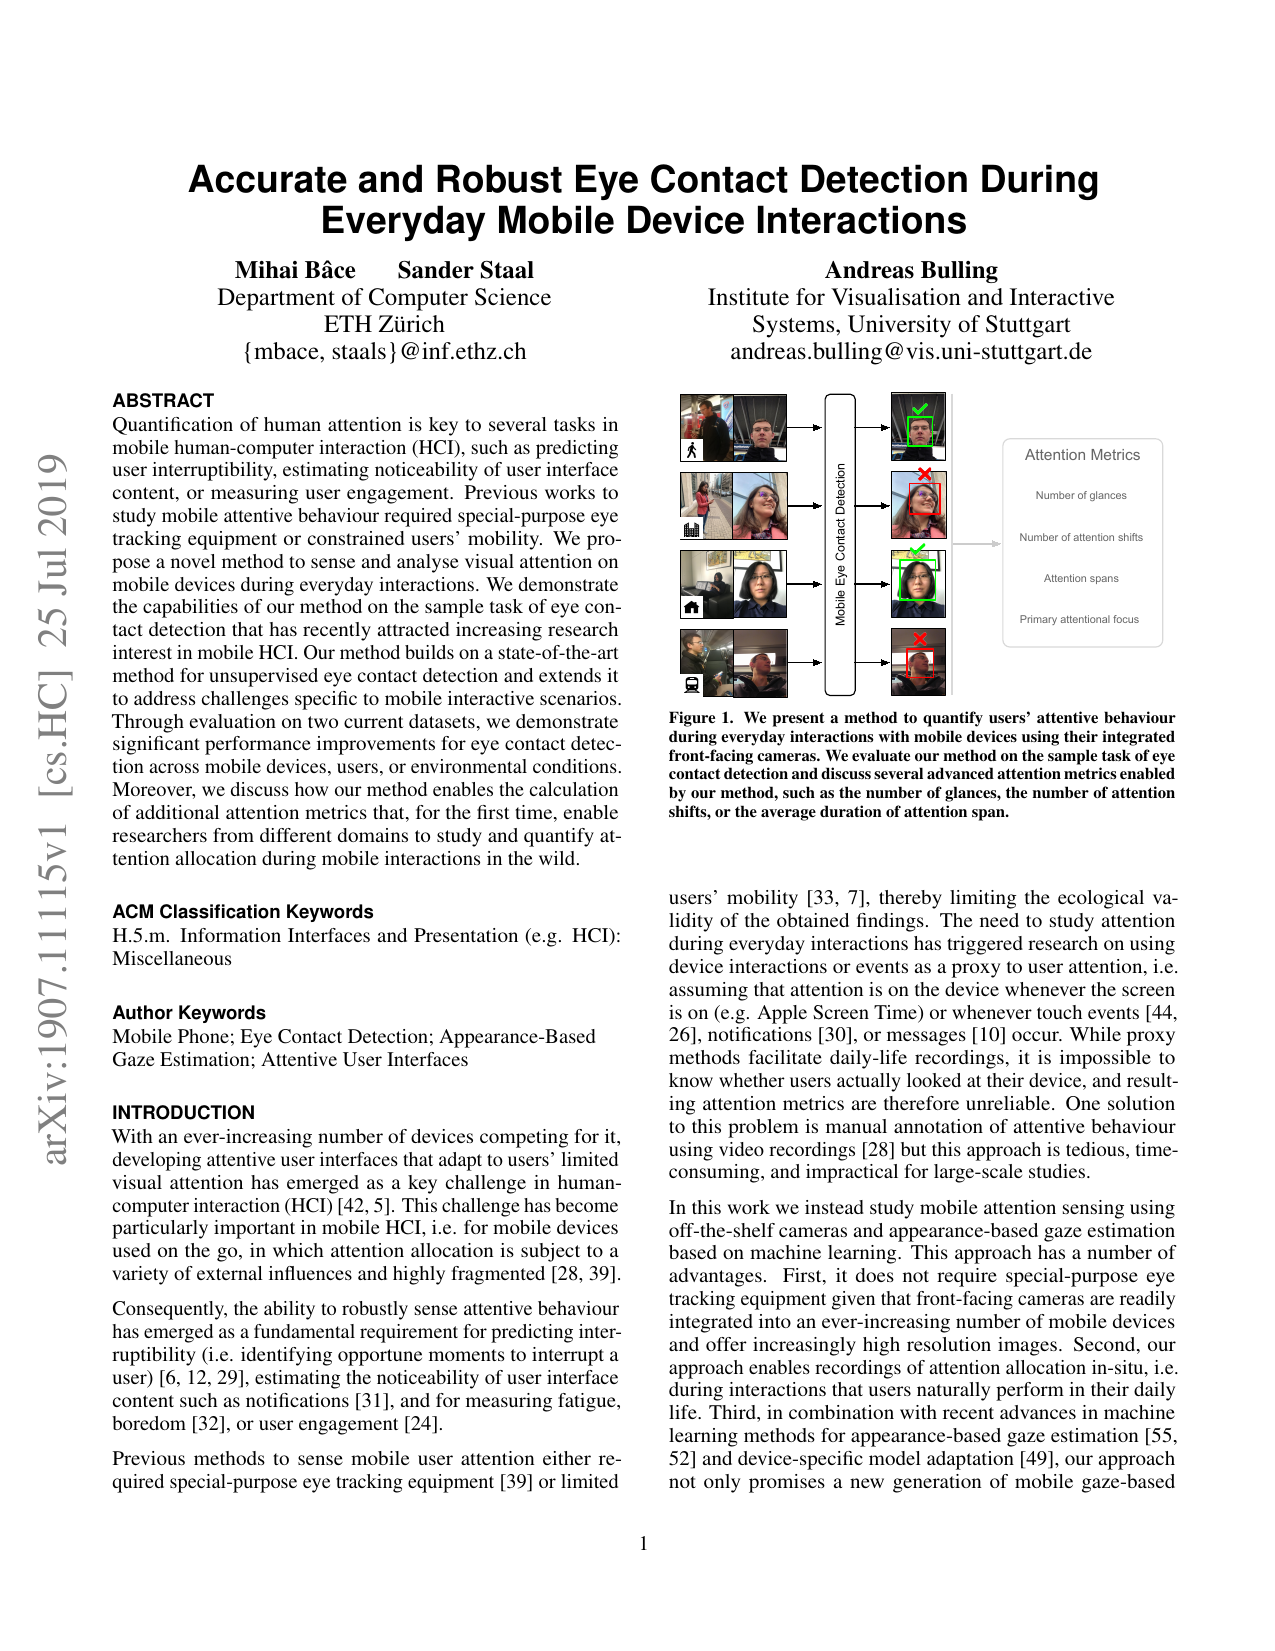 Accurate and Robust Eye Contact Detection During Everyday Mobile Device Interactions